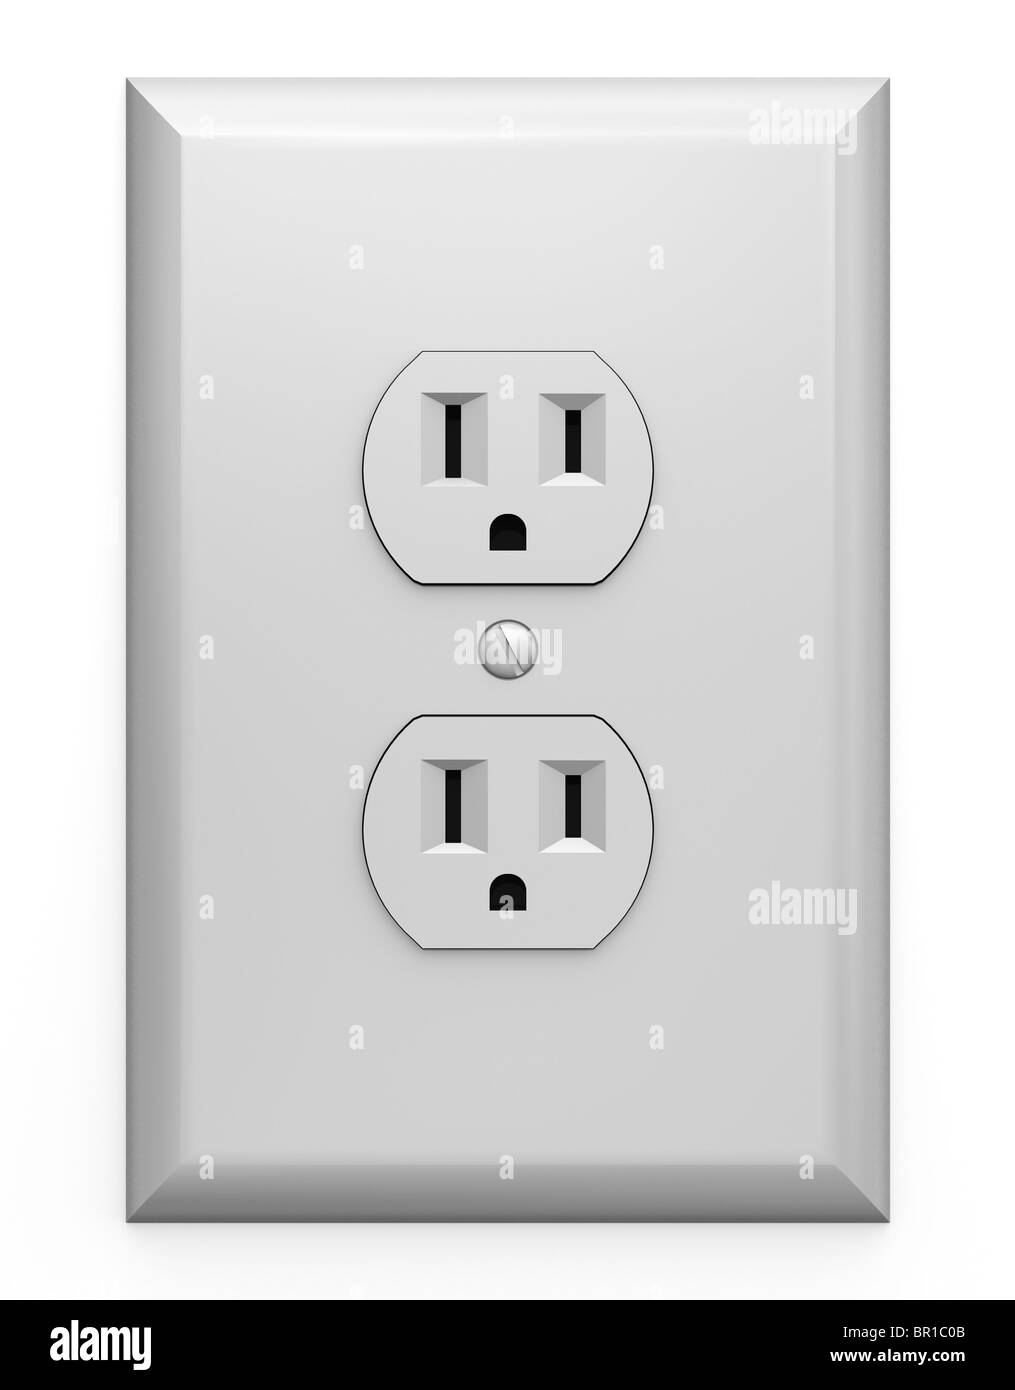 Outlet Black and White Stock Photos & Images - Alamy